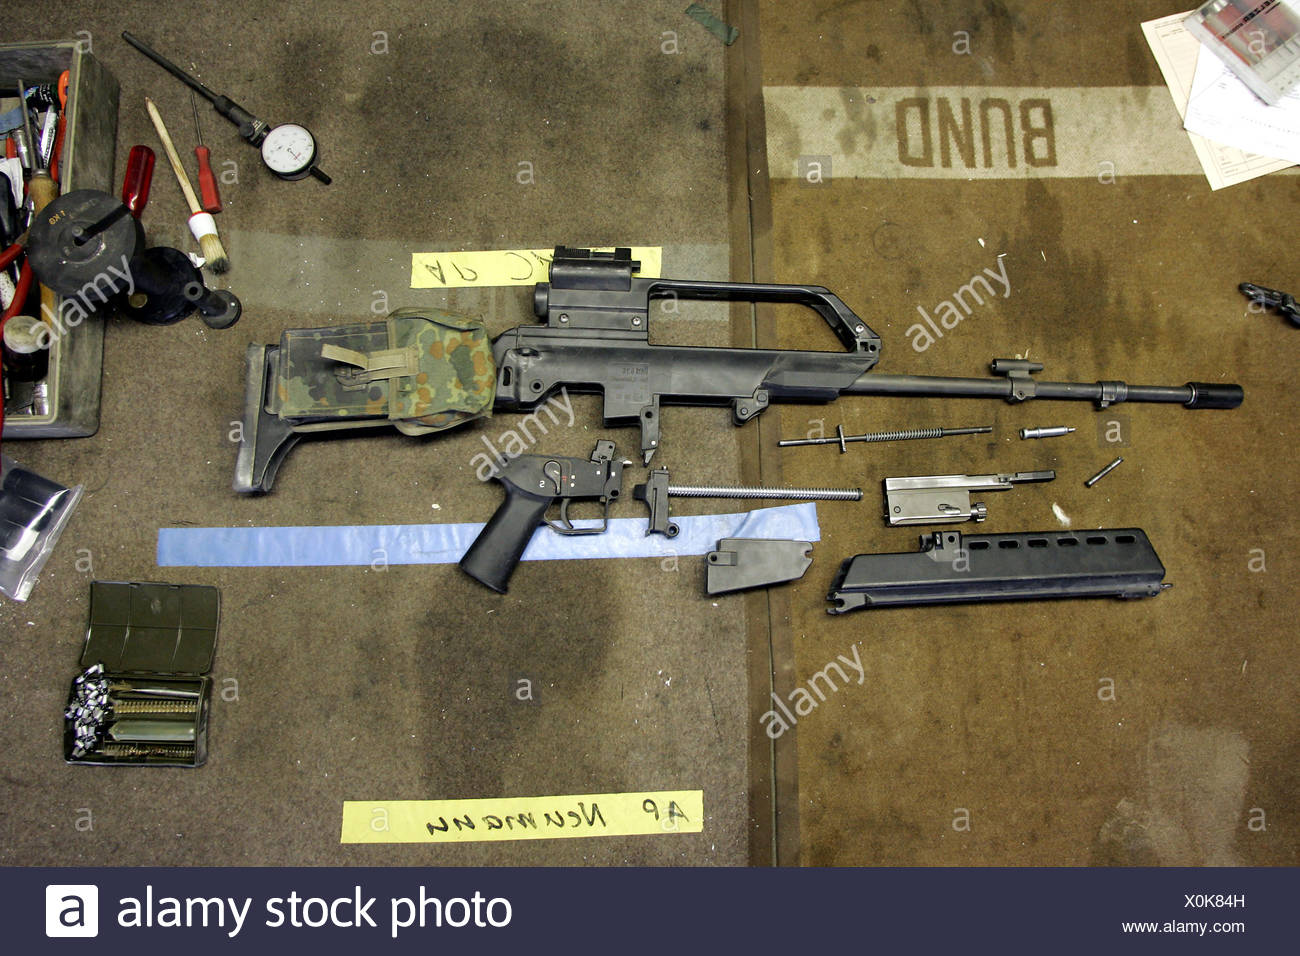 Disassembled weapon G36 - Stock Image